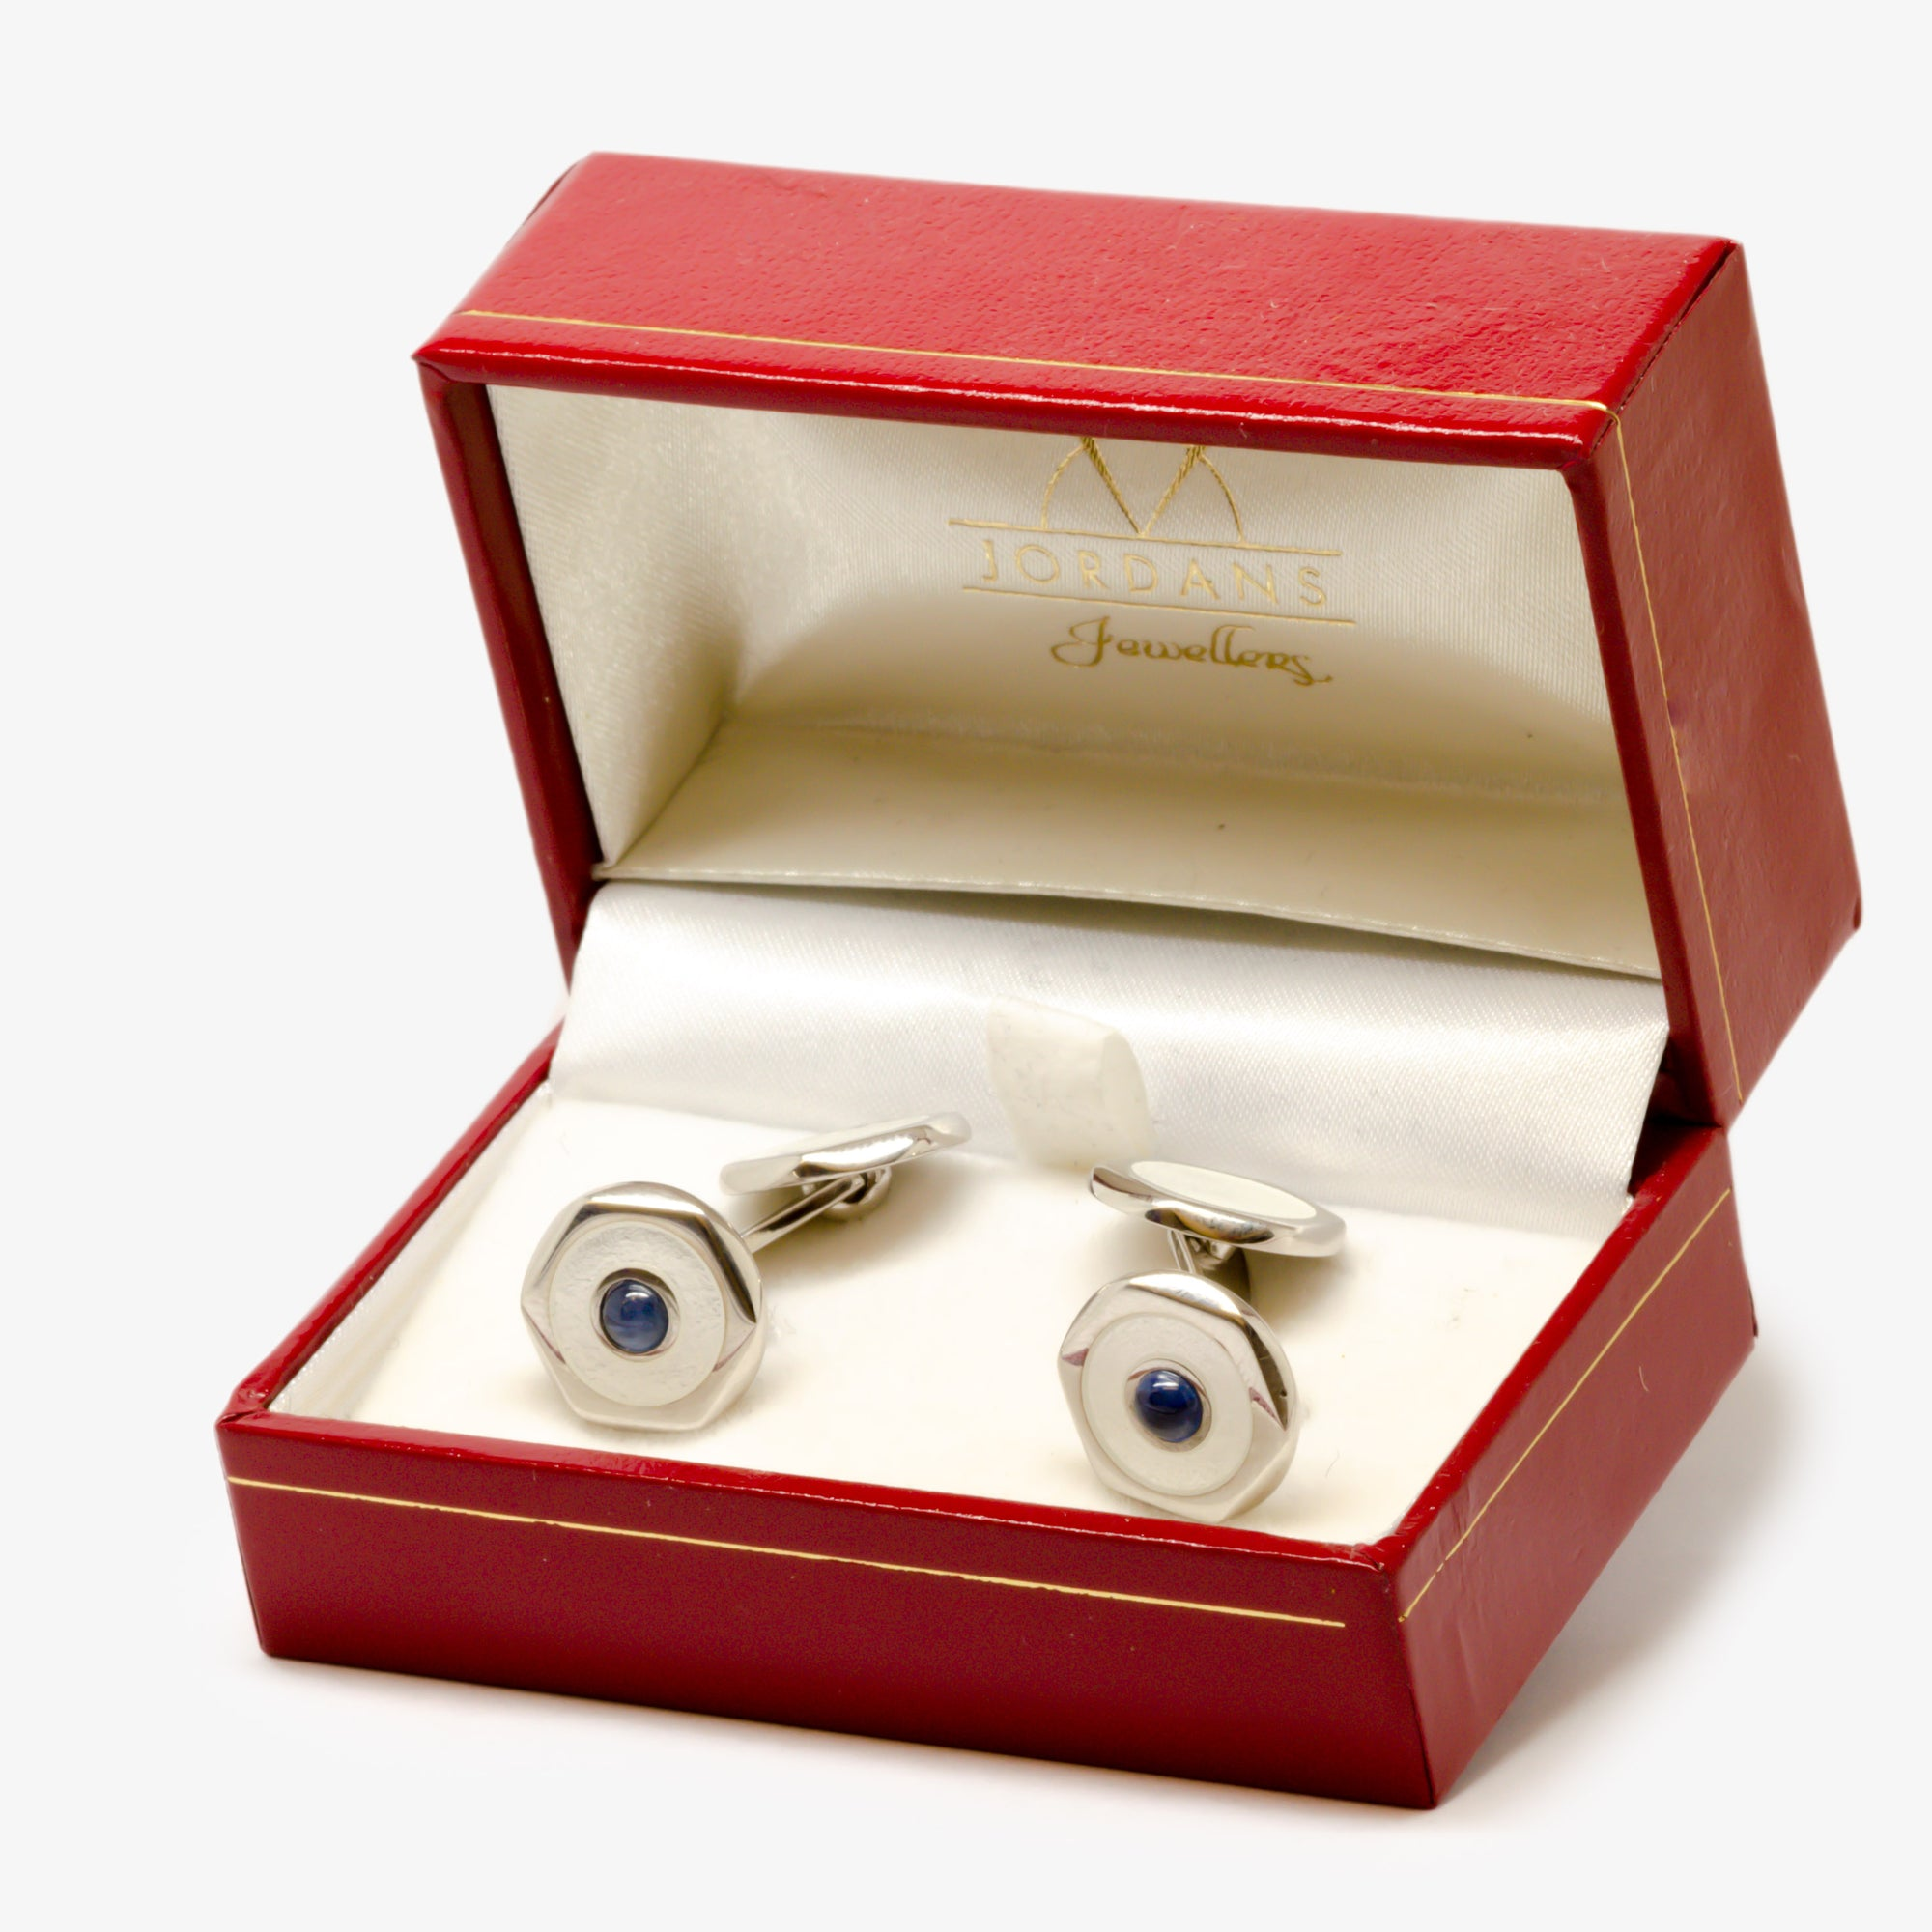 Jordans Jewellers silver, sapphire and white cufflinks